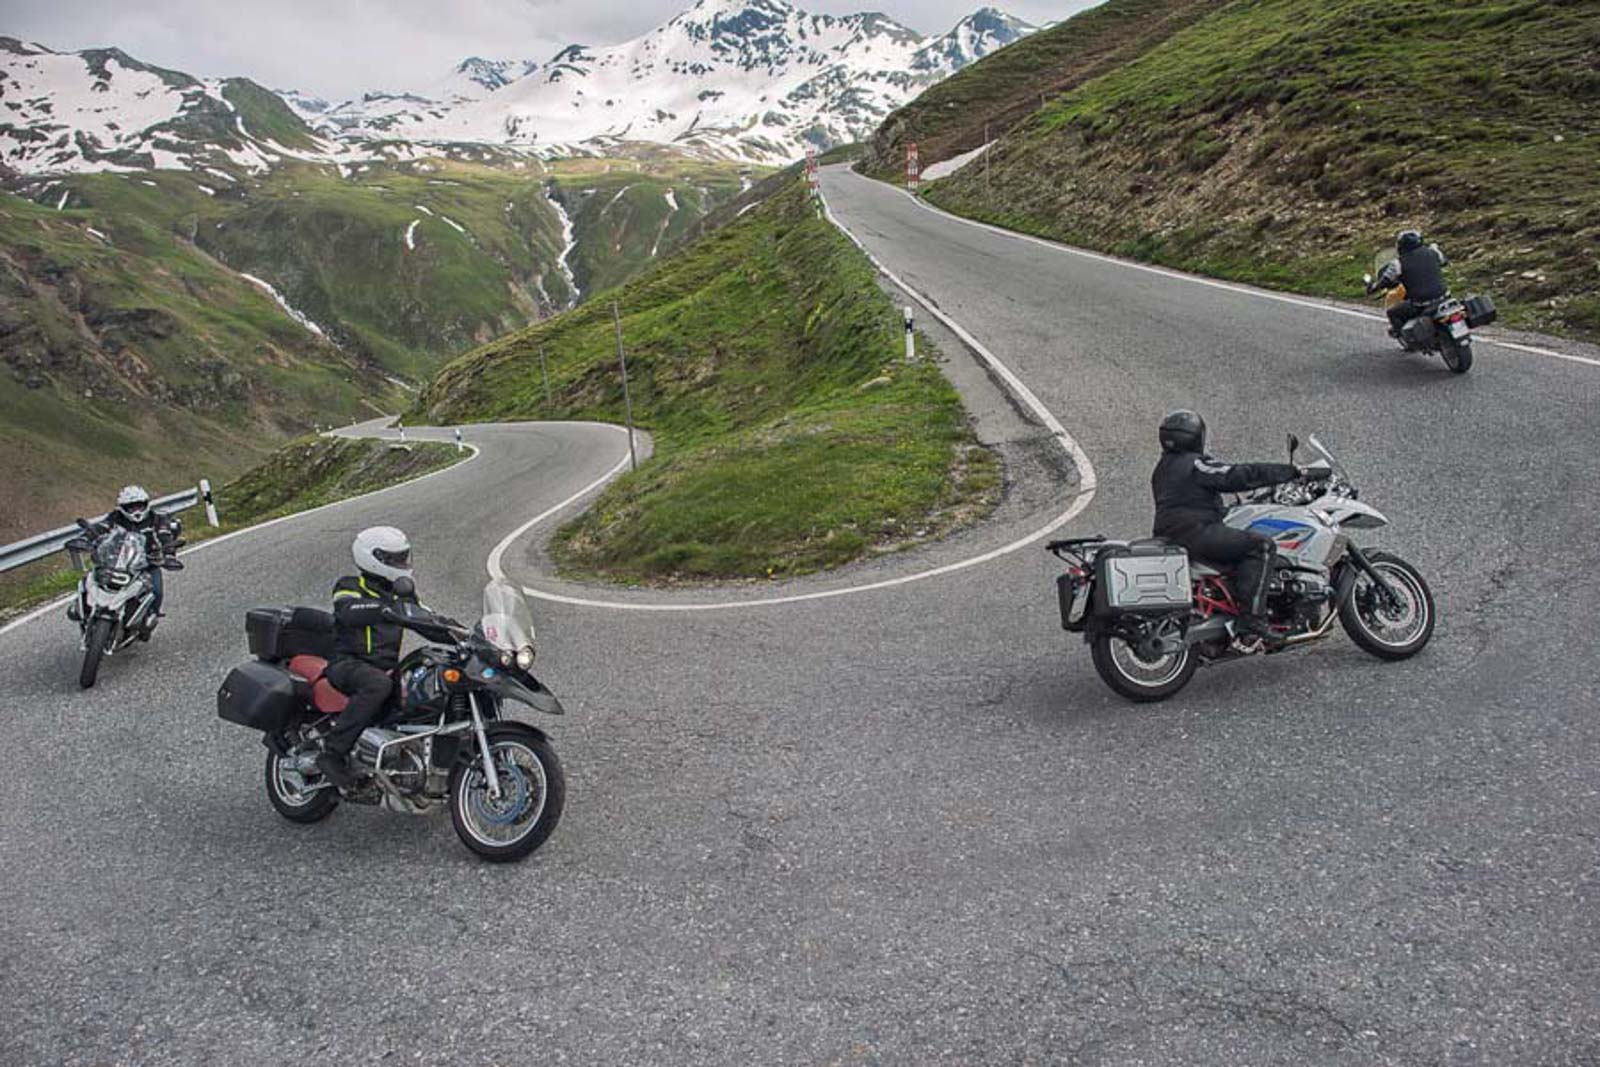 guided-motorcycle-tours-in-europe-alps-riding